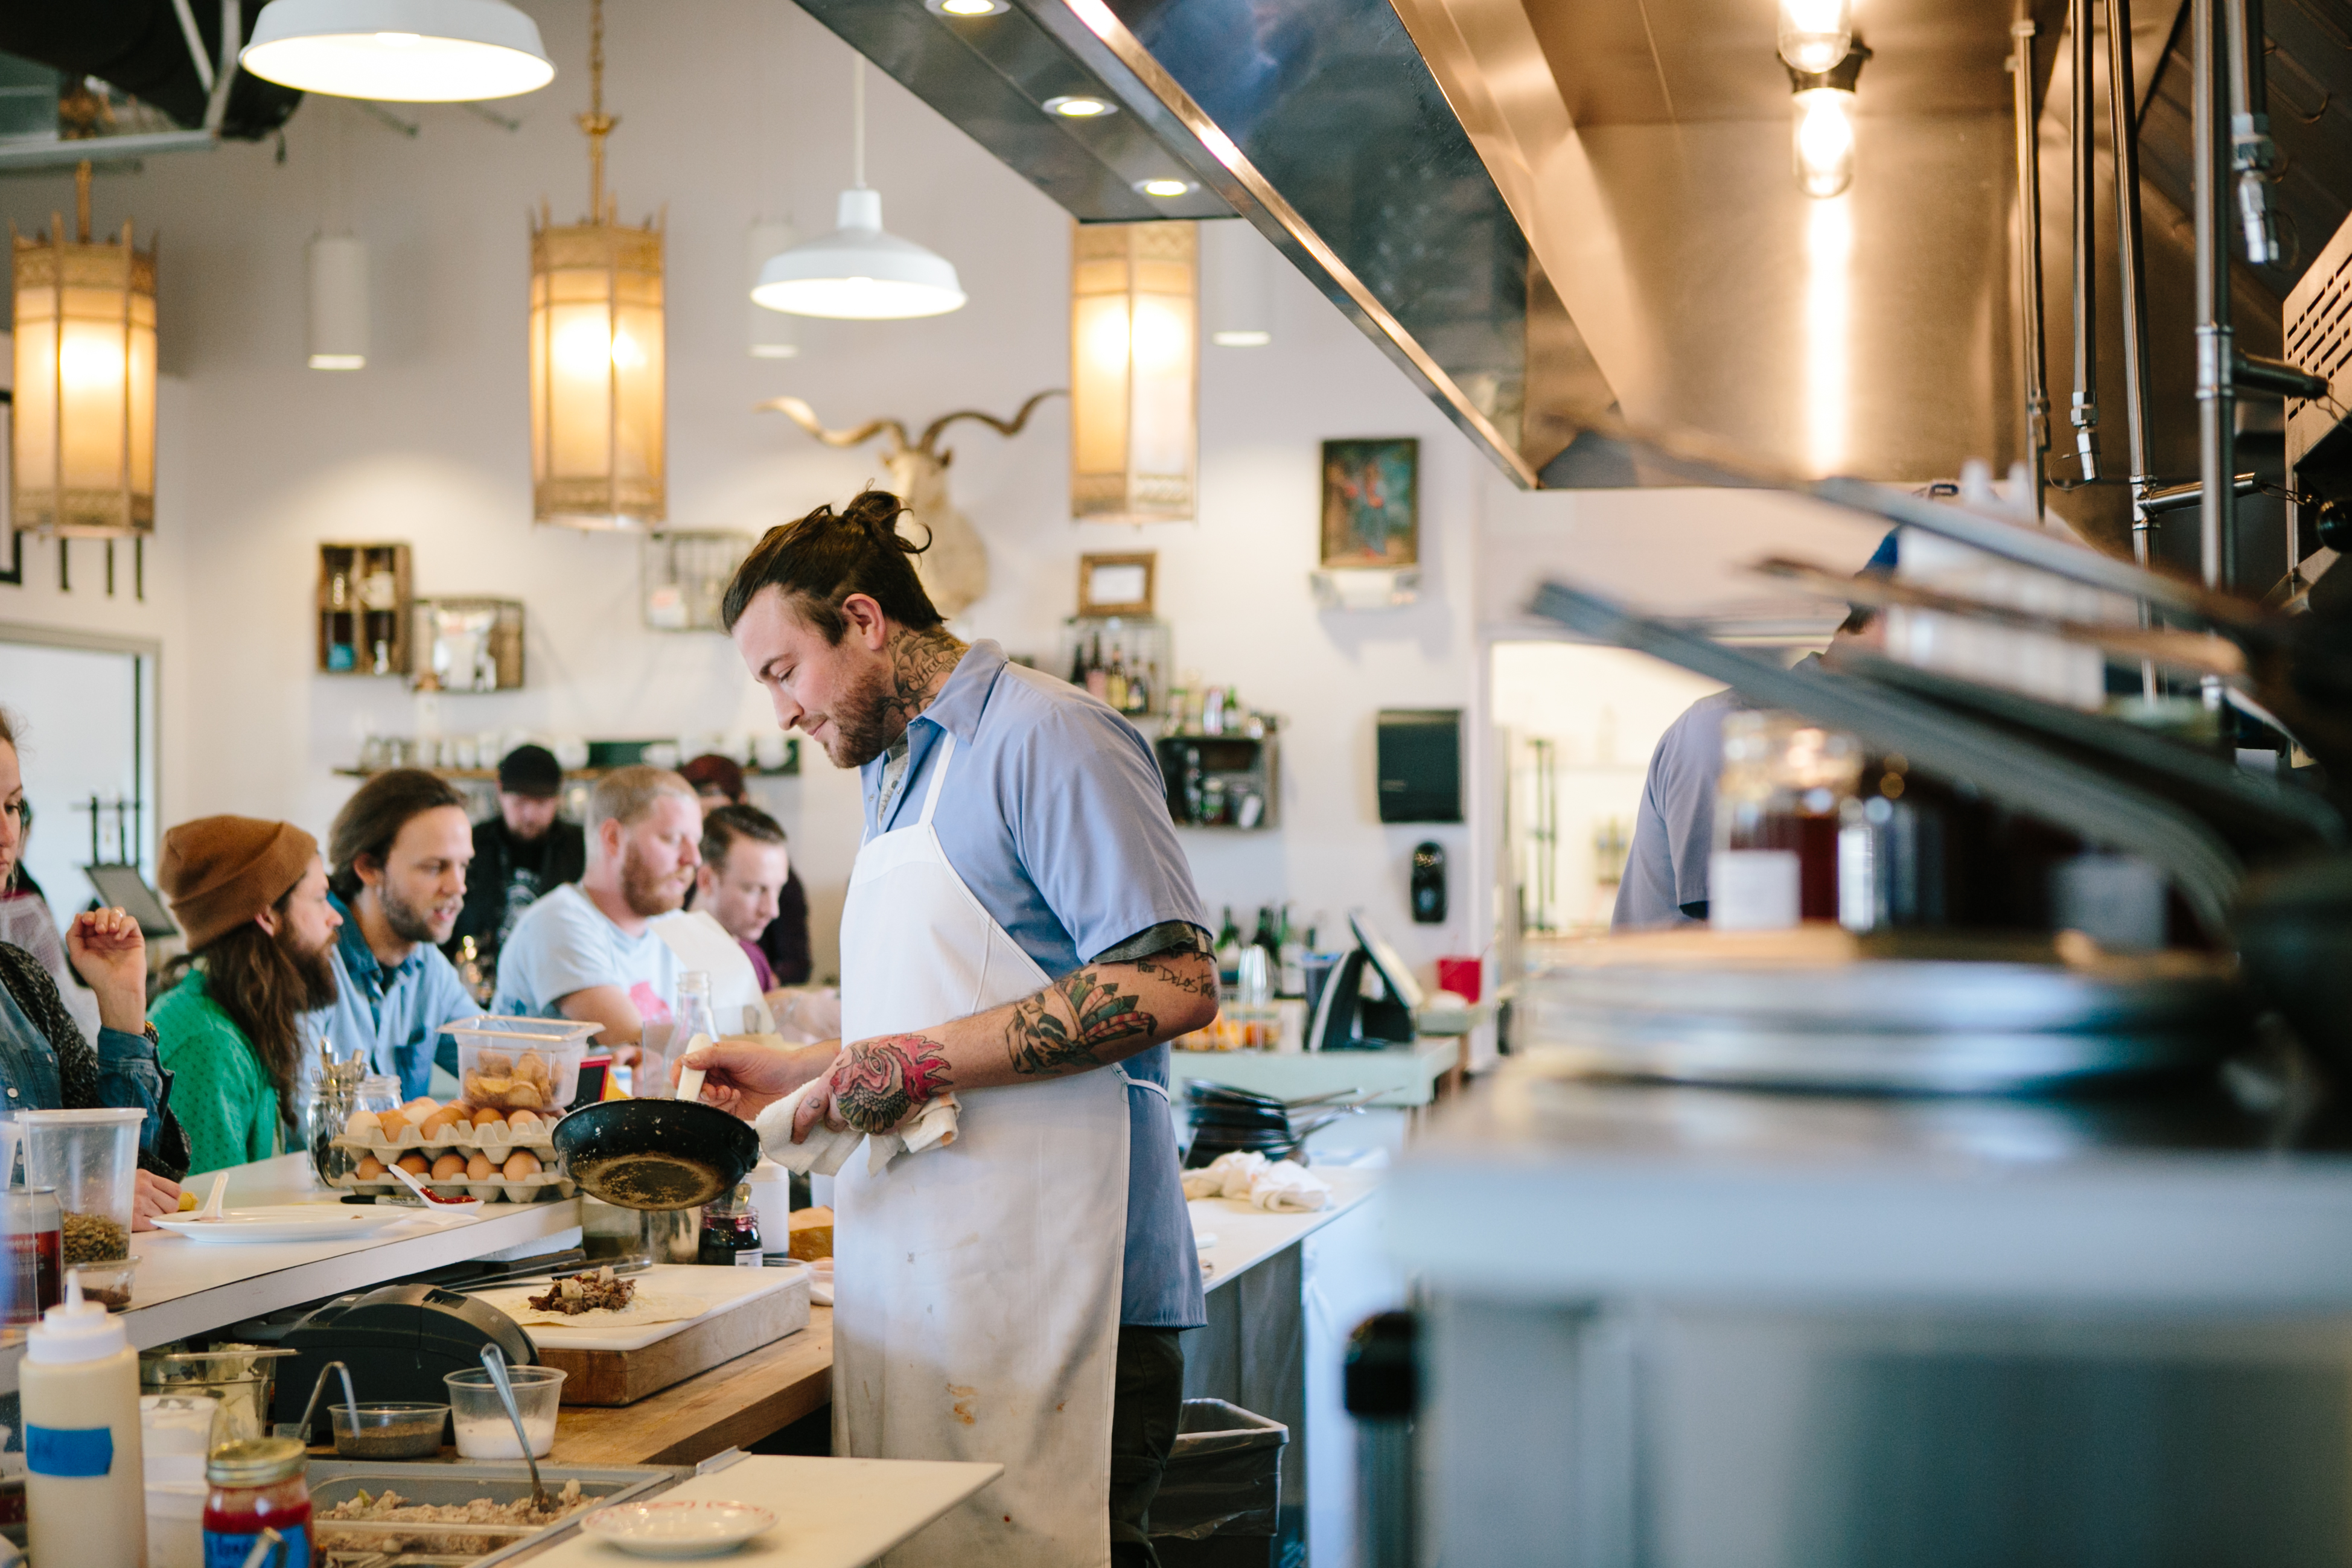 Chef Jonathan Brooks whips up inventive breakfasts at Milktooth. (Courtesy of Milktooth)